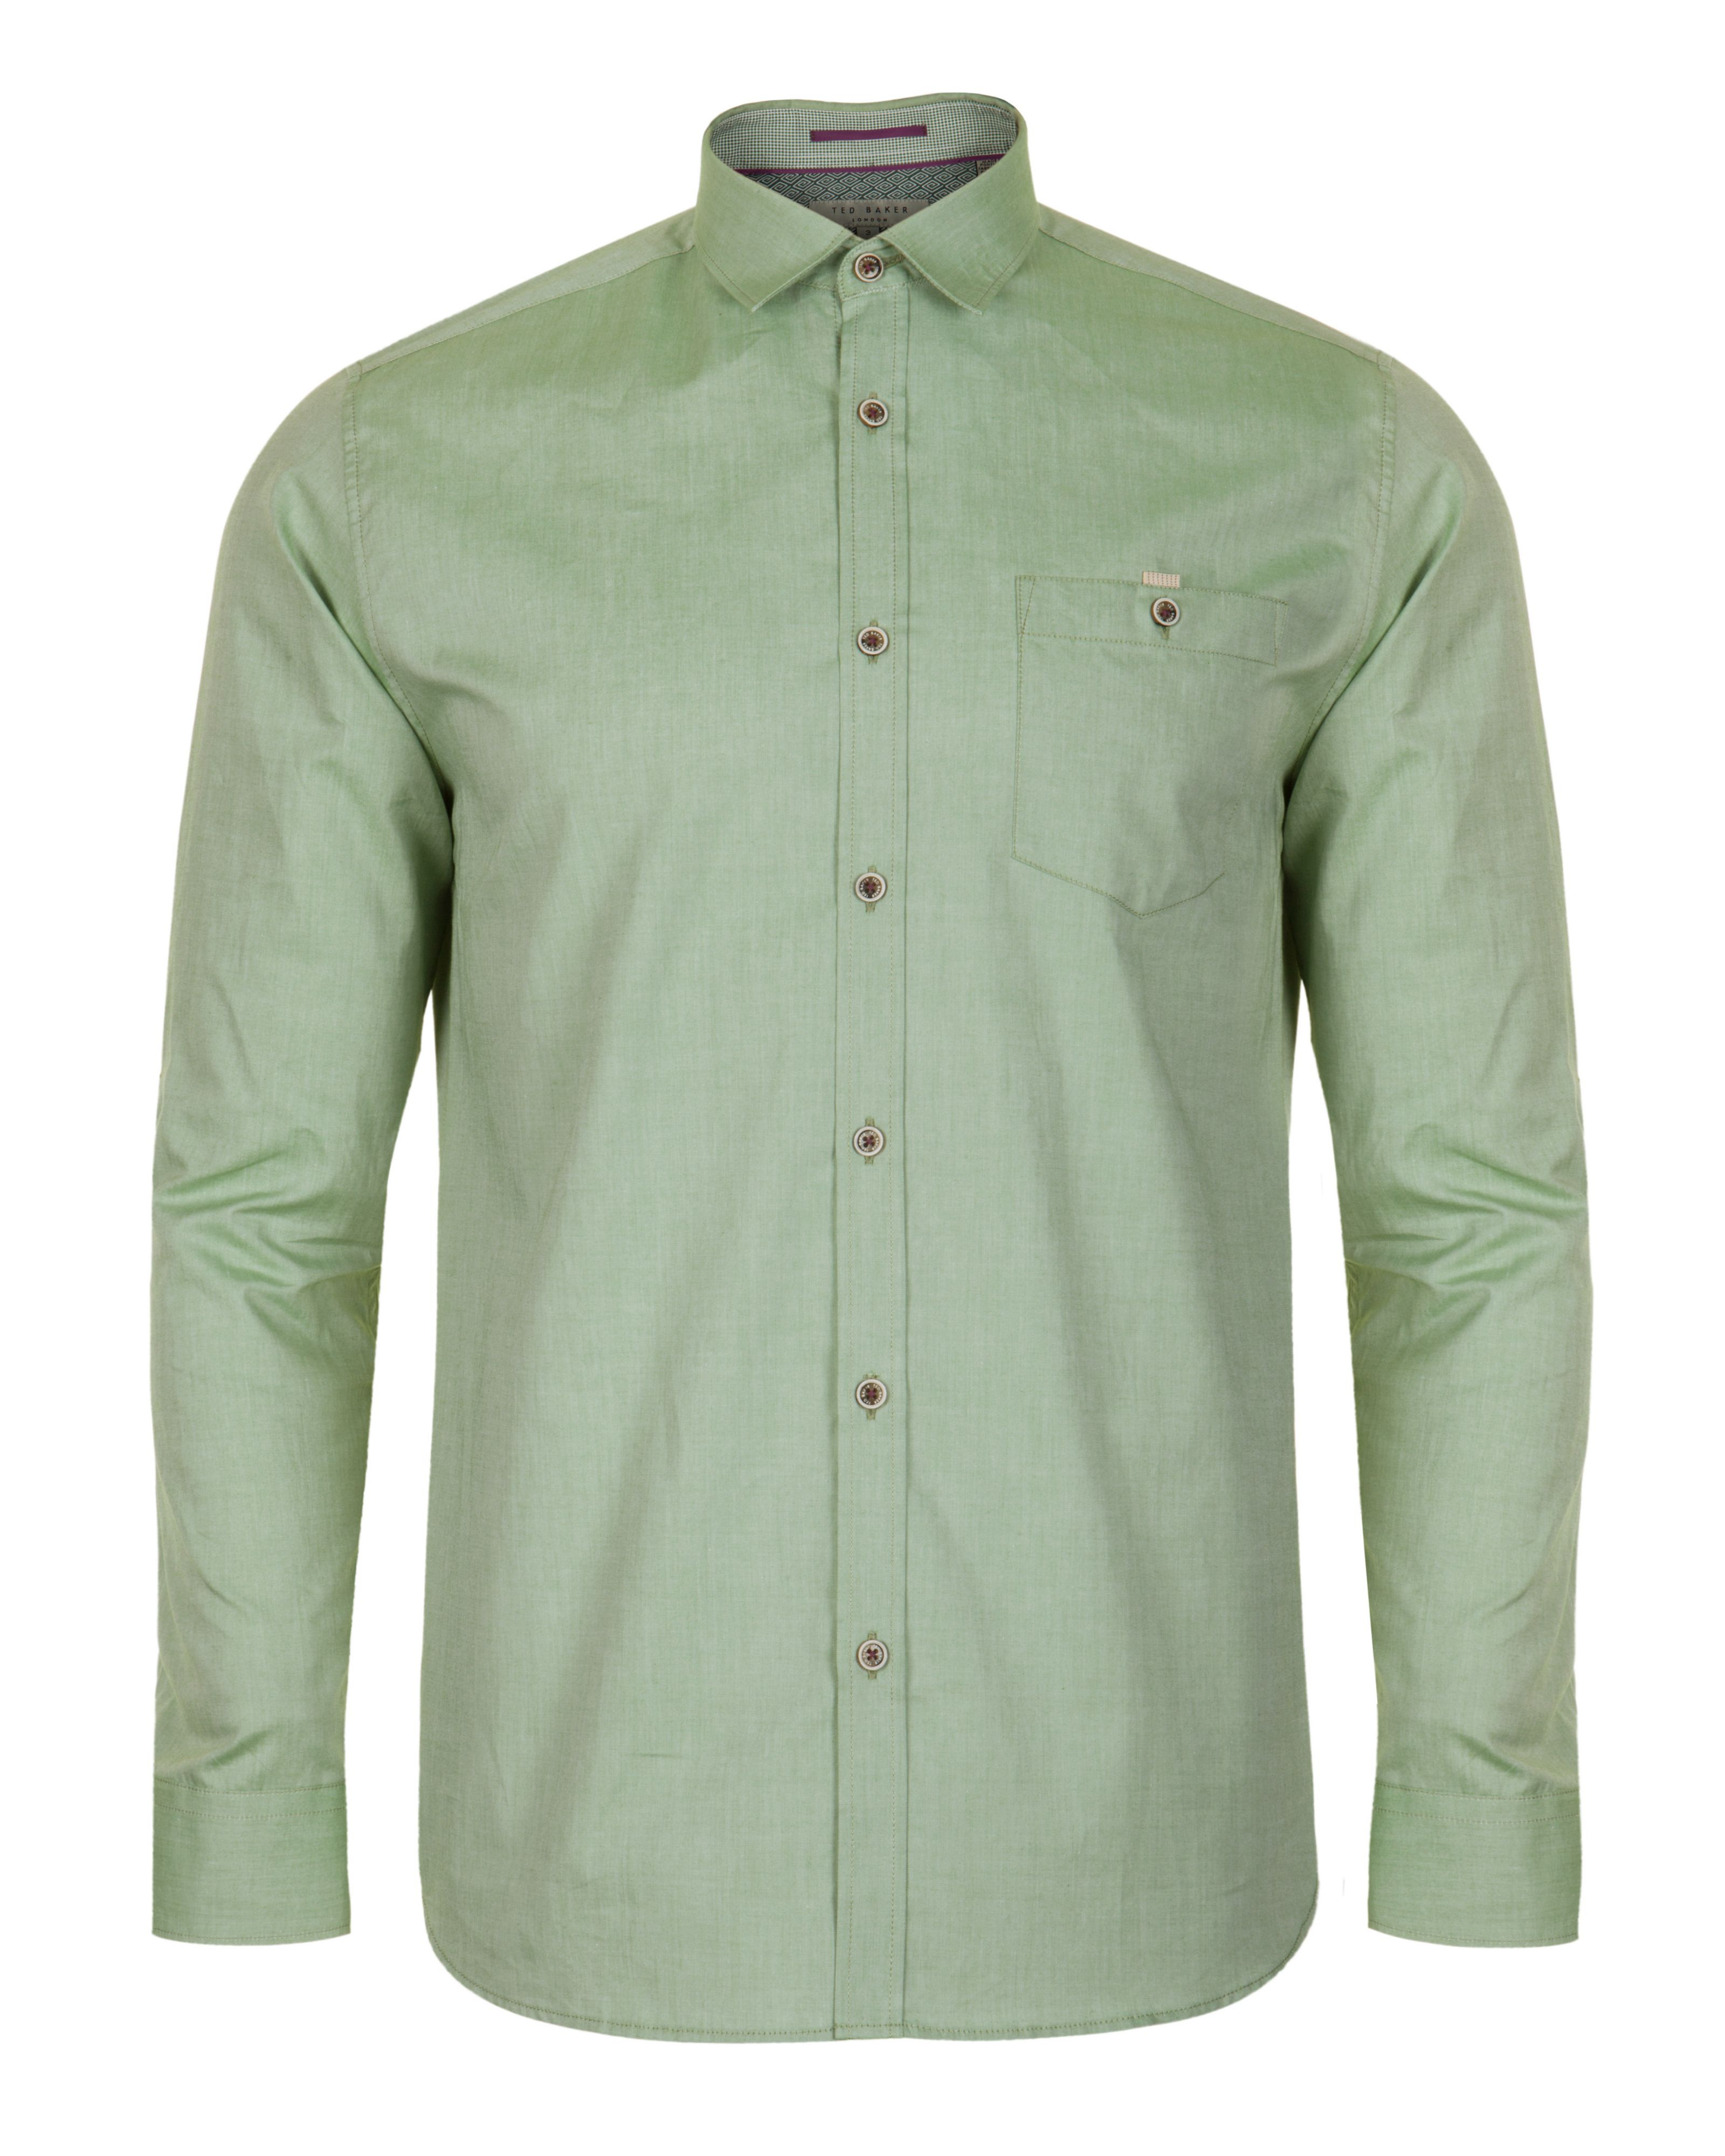 Jenspal long sleeve oxford shirt